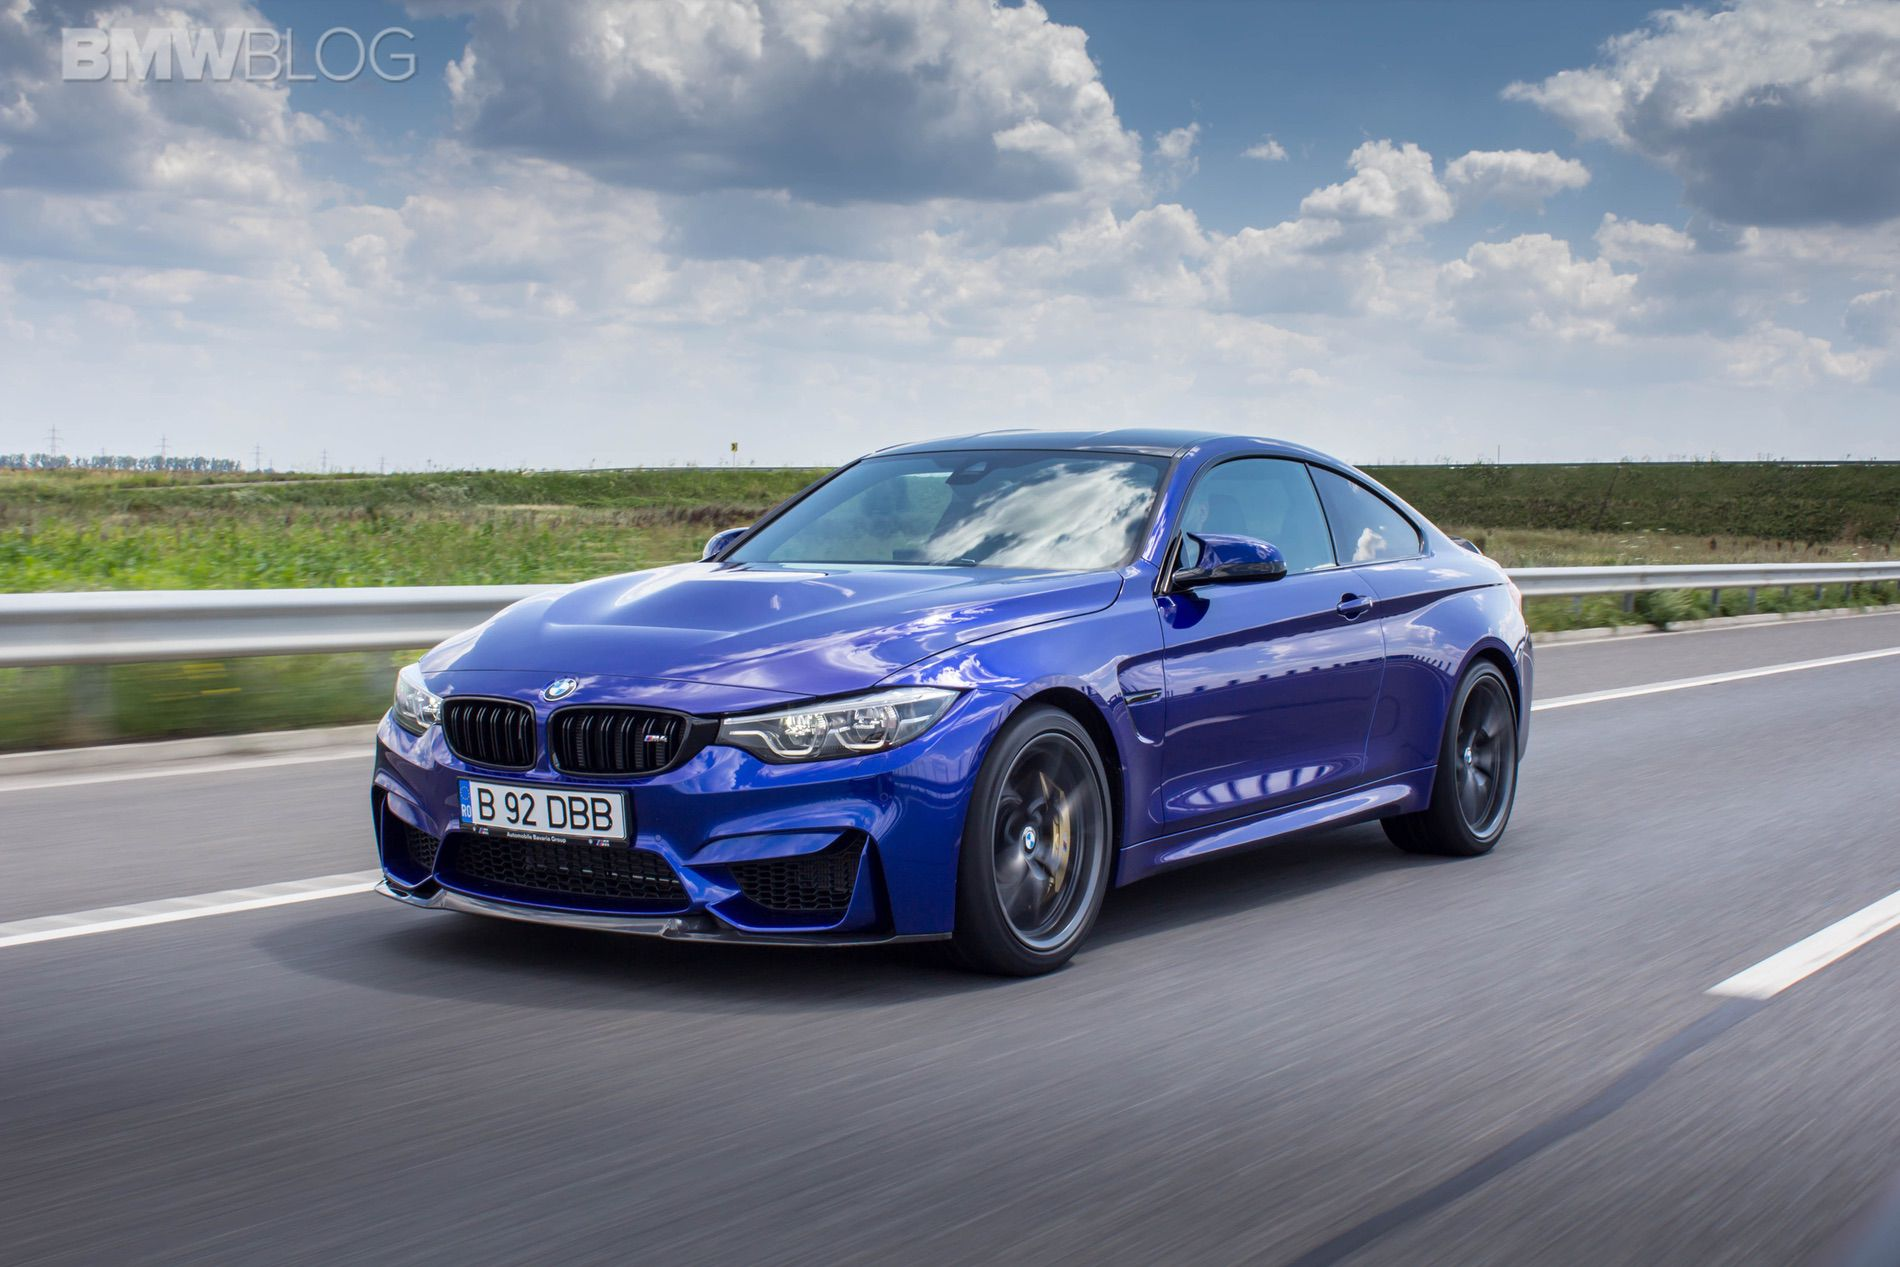 test drive: 2018 bmw m4 cs – for the track fiends